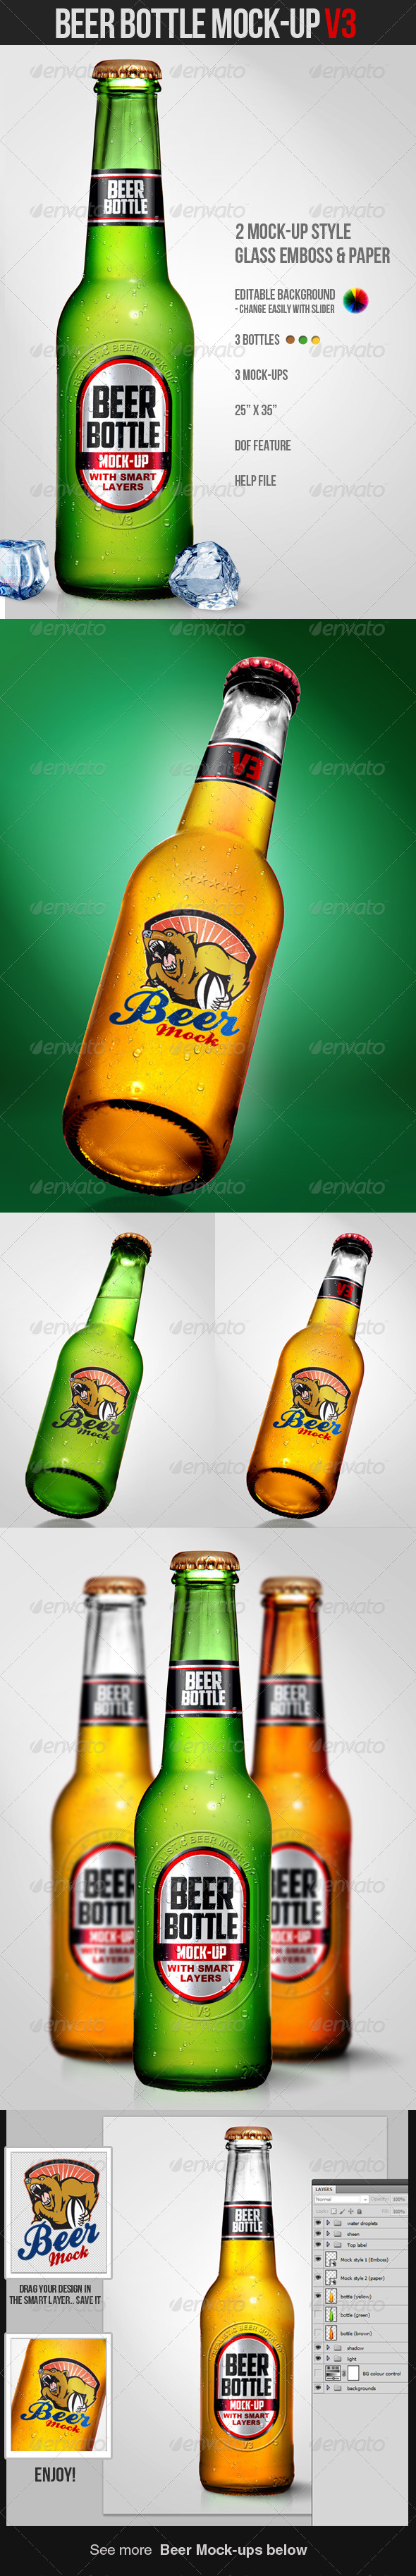 GraphicRiver Beer Bottle Mock-Up V3 4333513